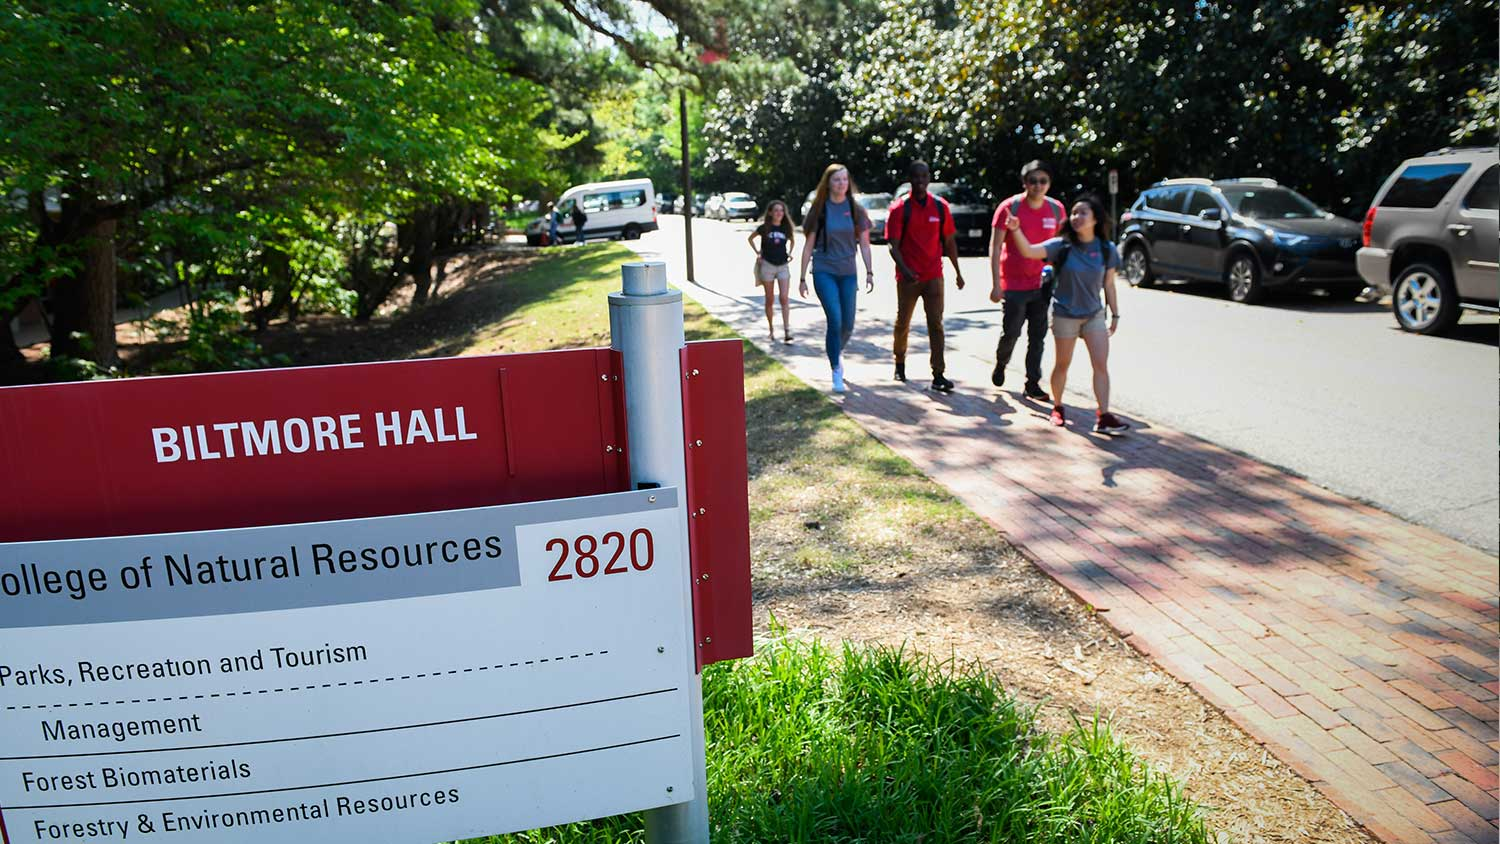 Students Walking near Biltmore Hall - College of Natural Resources at NC State University